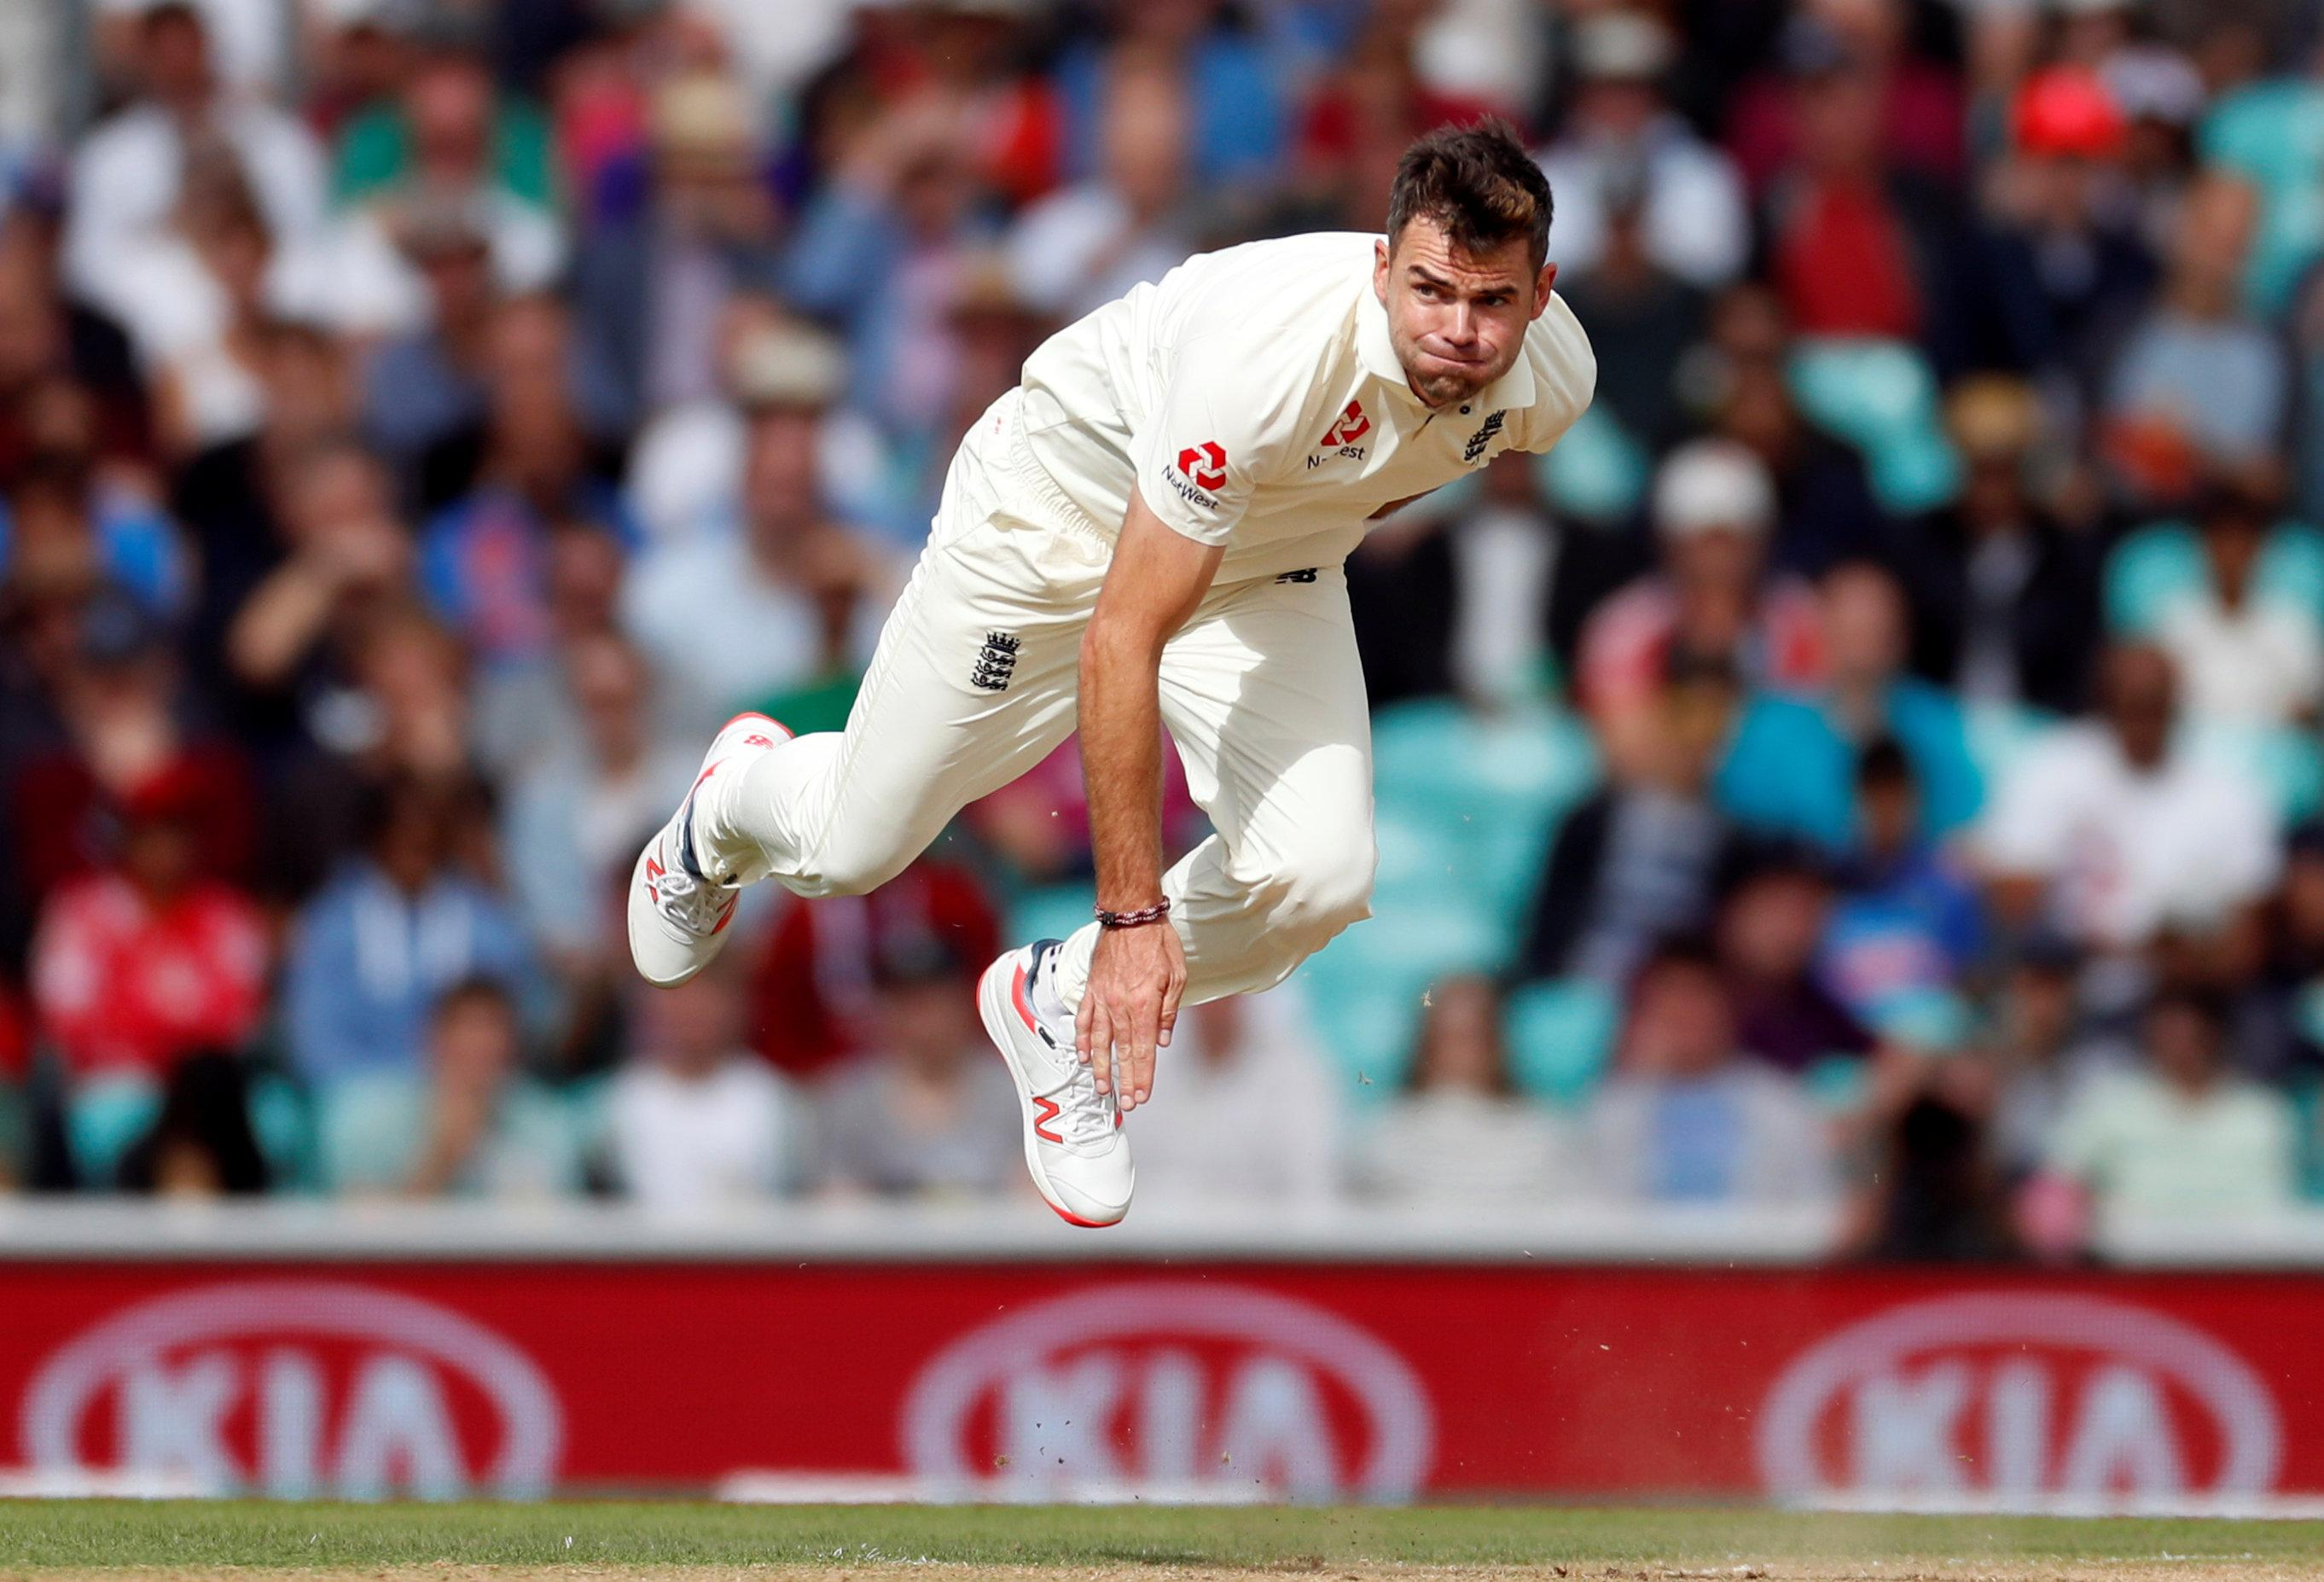 Jimmy Anderson has warned the world's top batsmen he plans to get even better